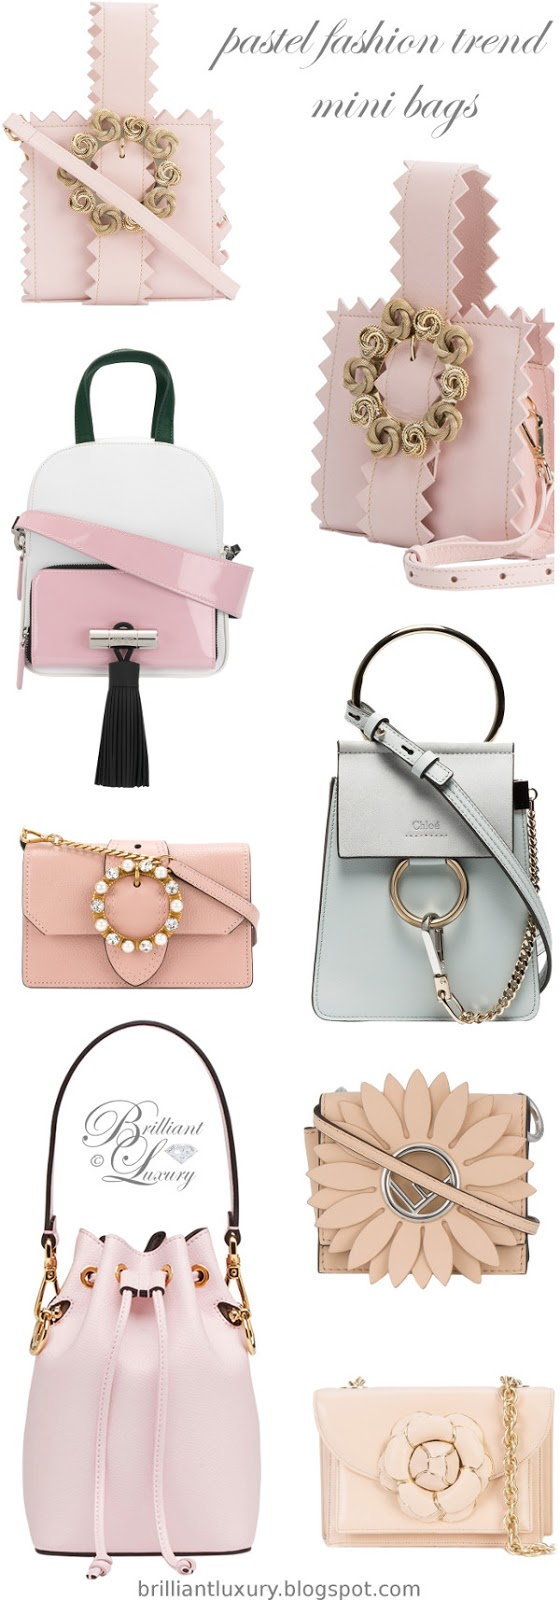 Brilliant Luxury ♦ pastel fashion trend ~ mini bags